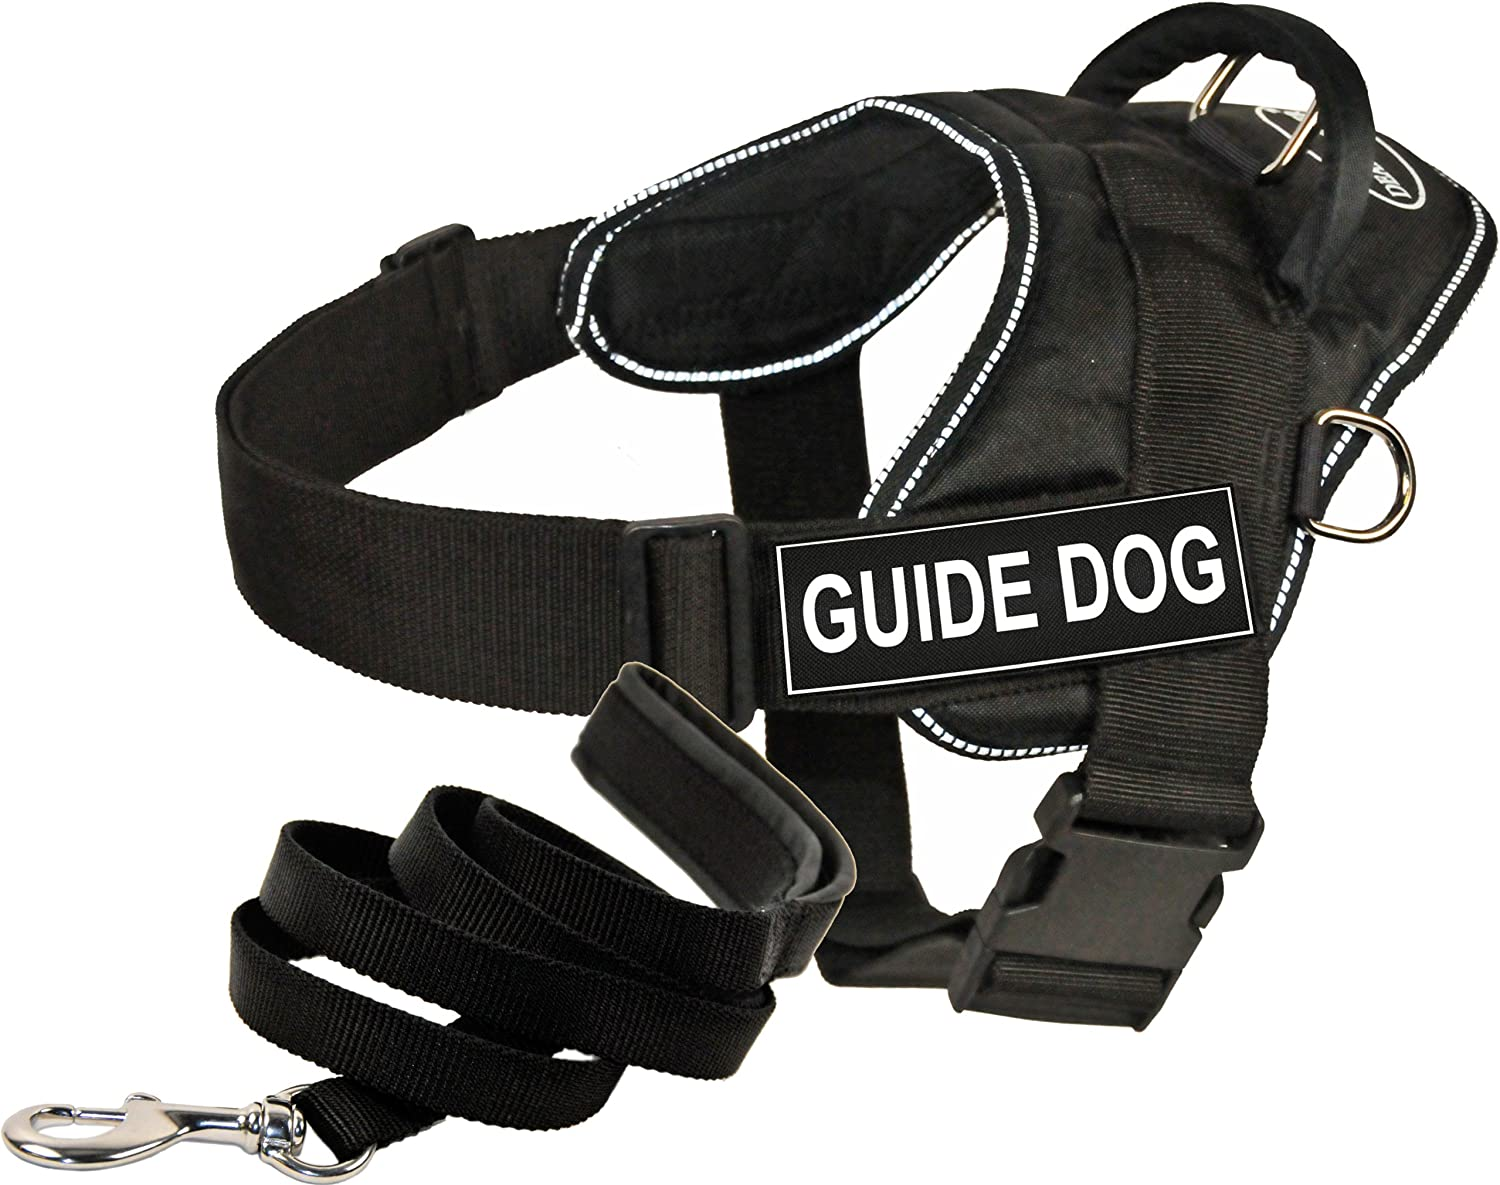 Dean & Tyler DT Fun Works Harness 6Feet Padded Puppy Leash, Guide Dog, Large, Black